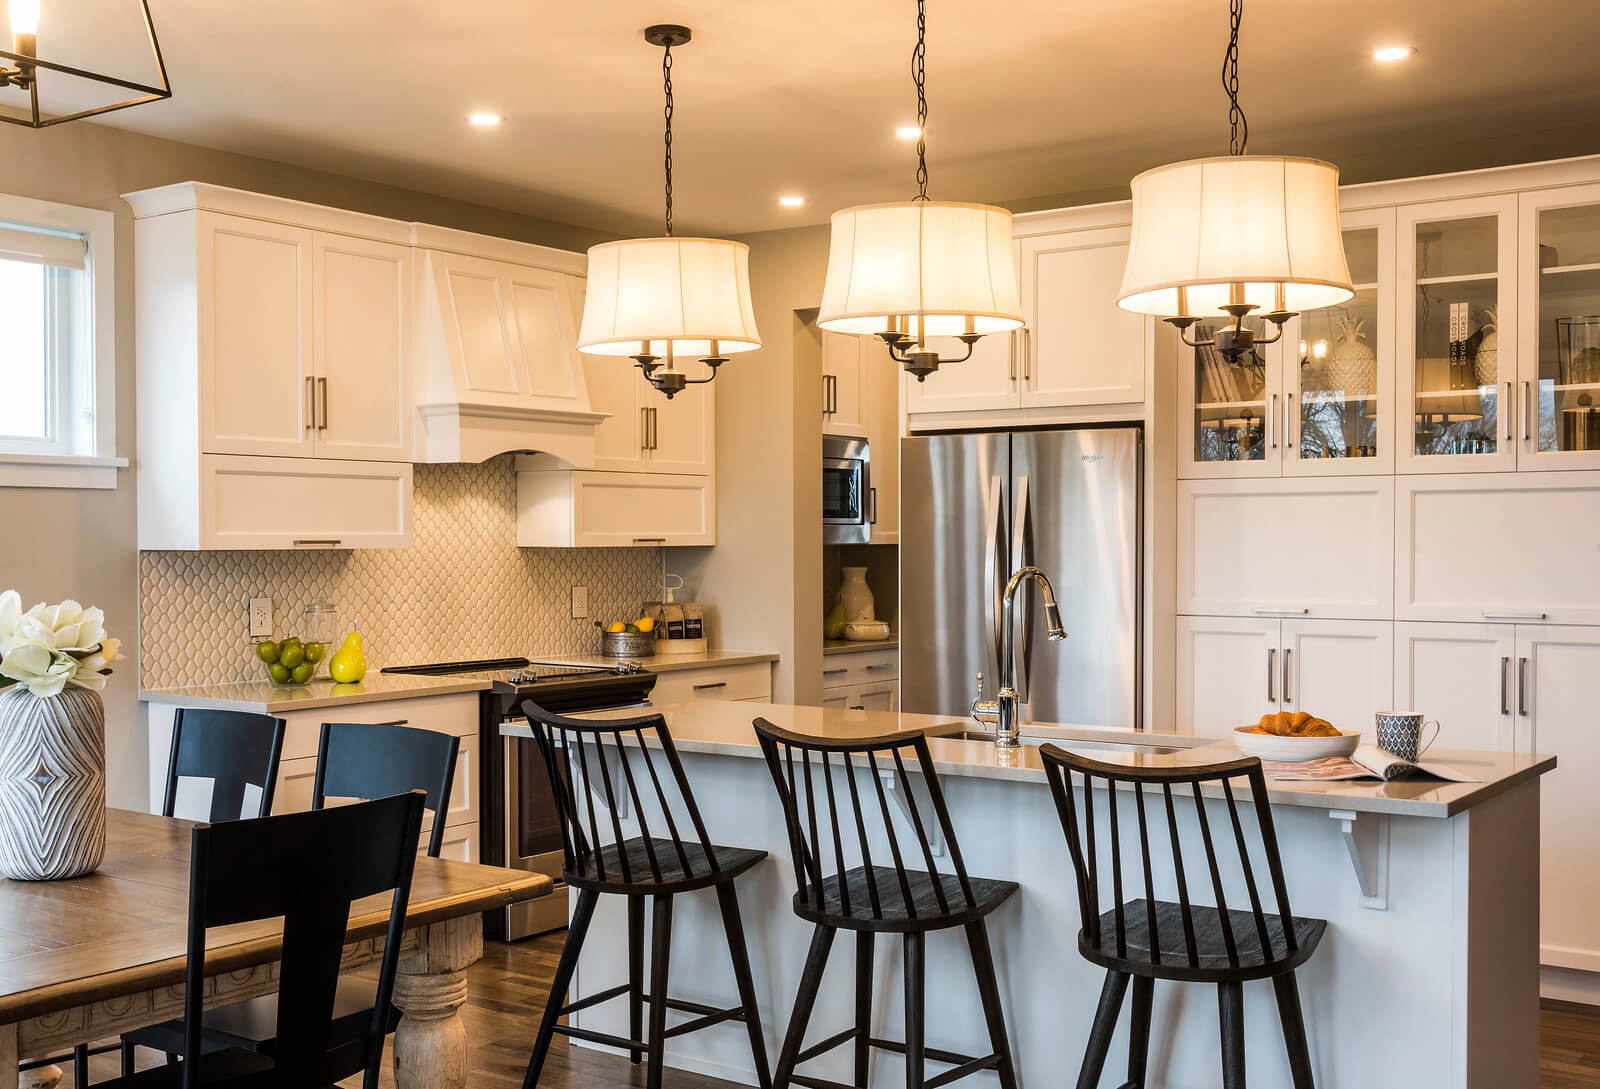 New Calgary  Model Home Oxford in empty, located at 2 Flegg Way Built By Cardel Homes Calgary